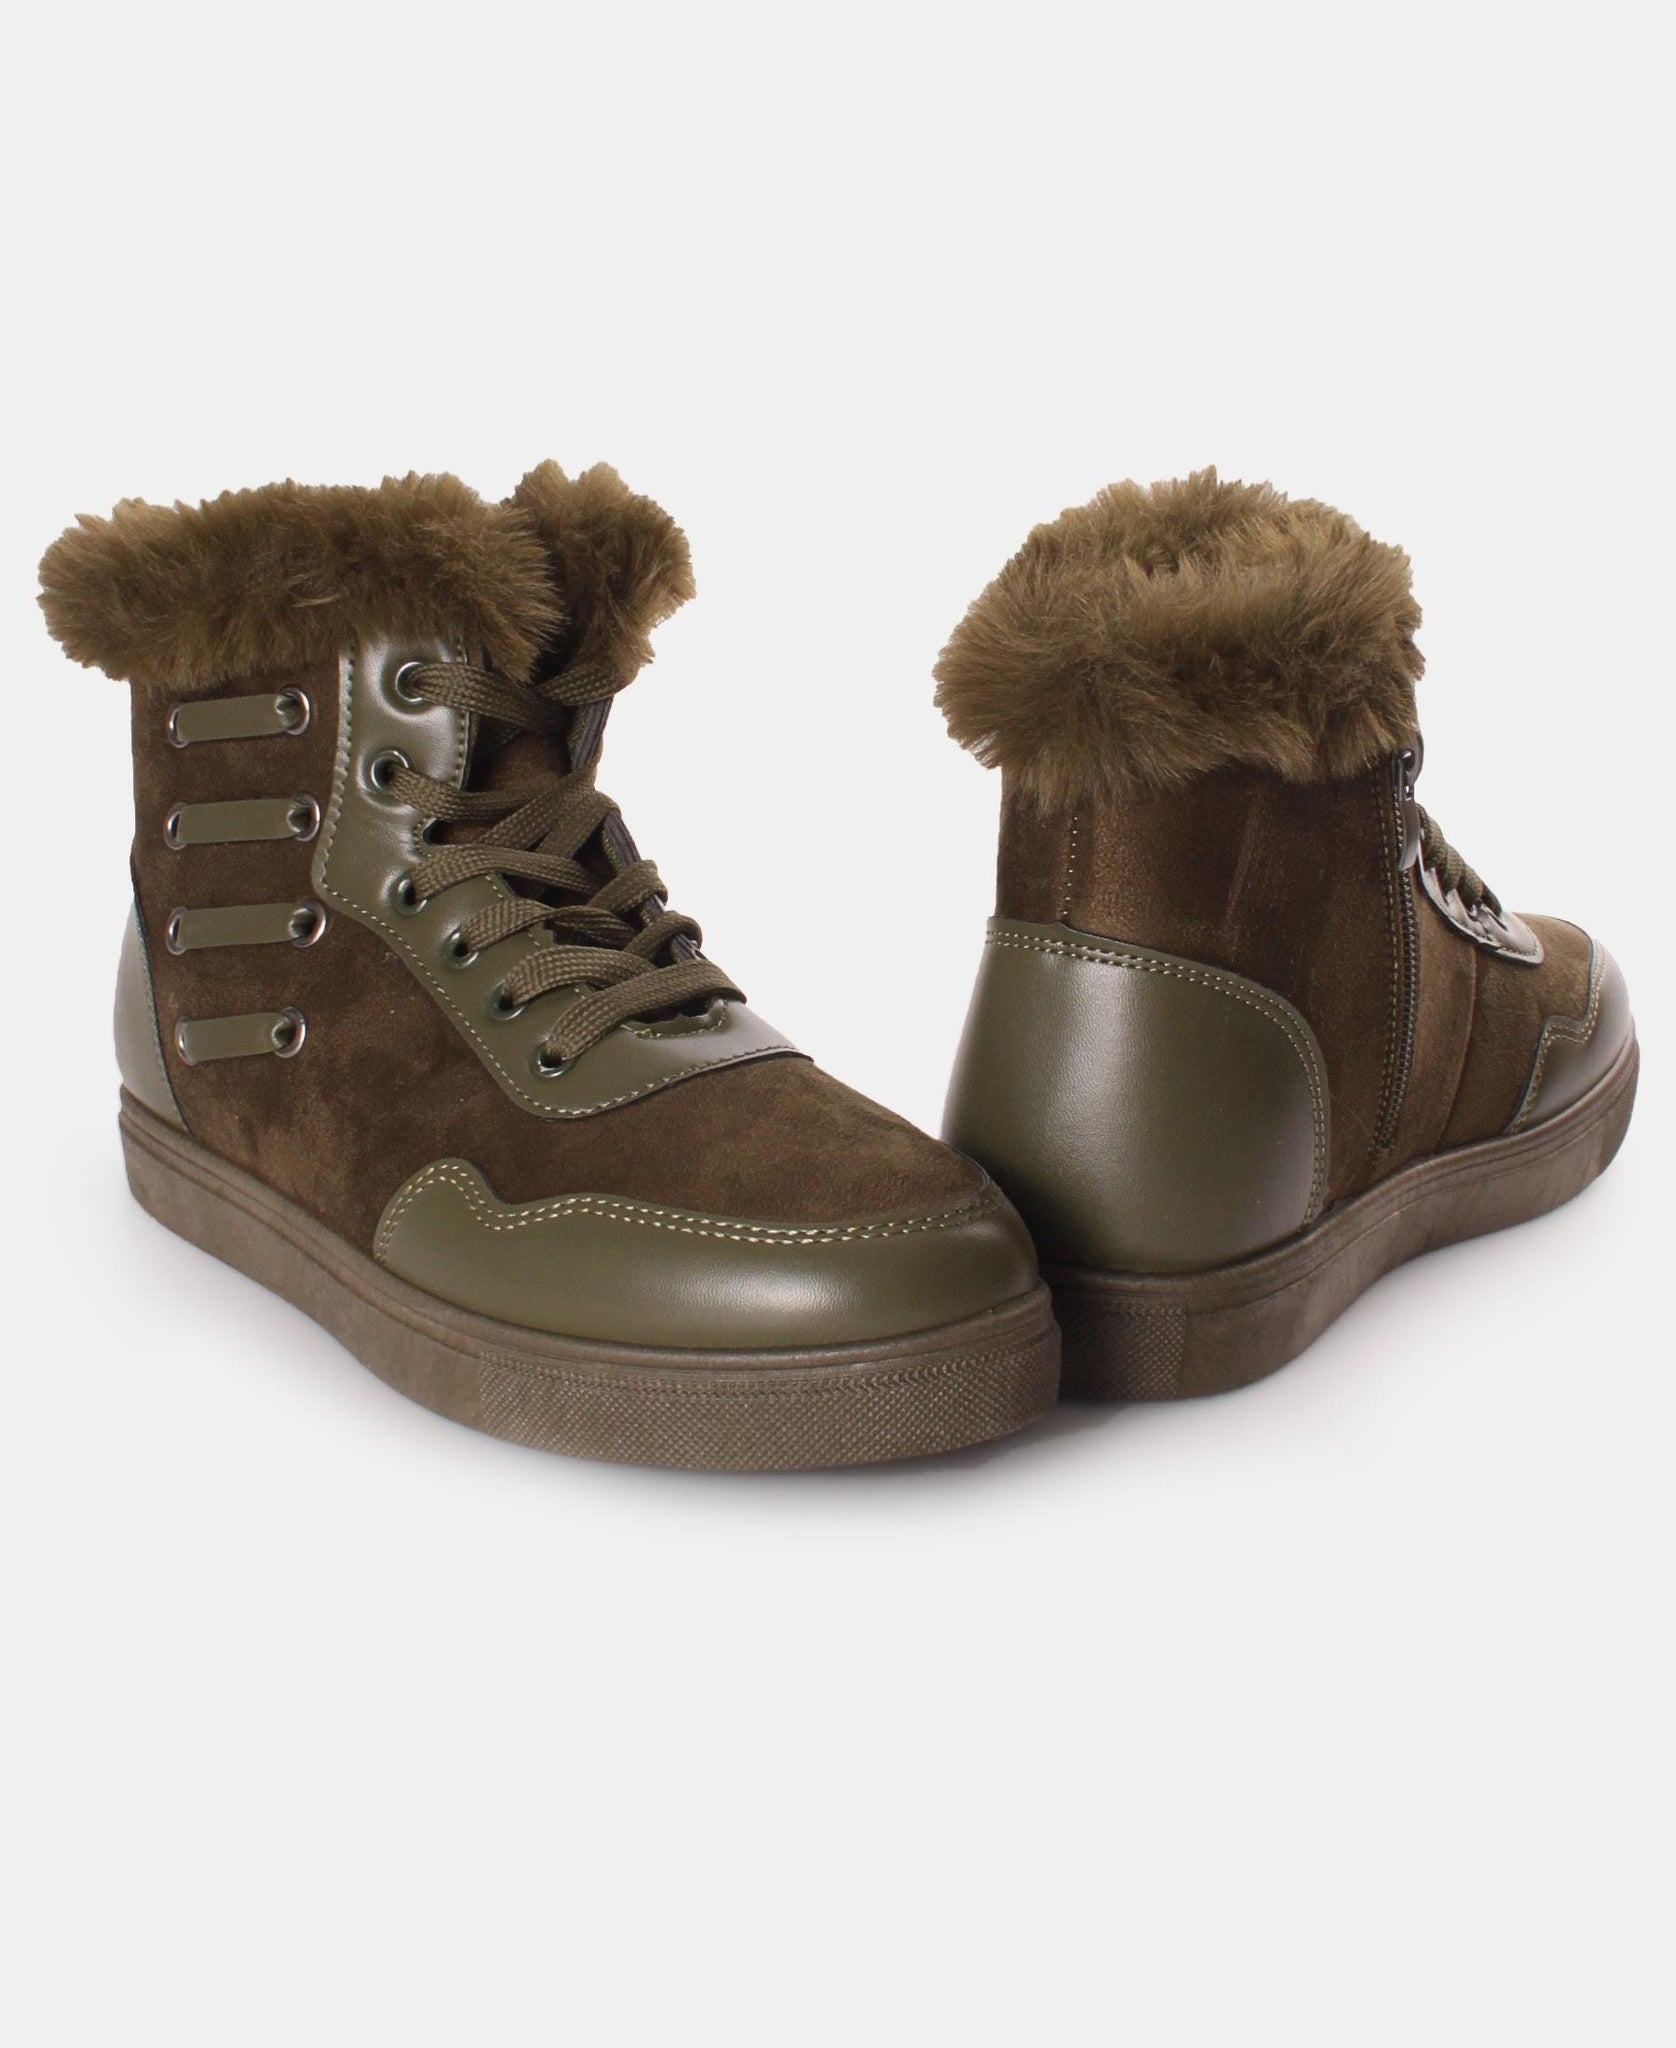 Fur Lace Up Boots - Olive